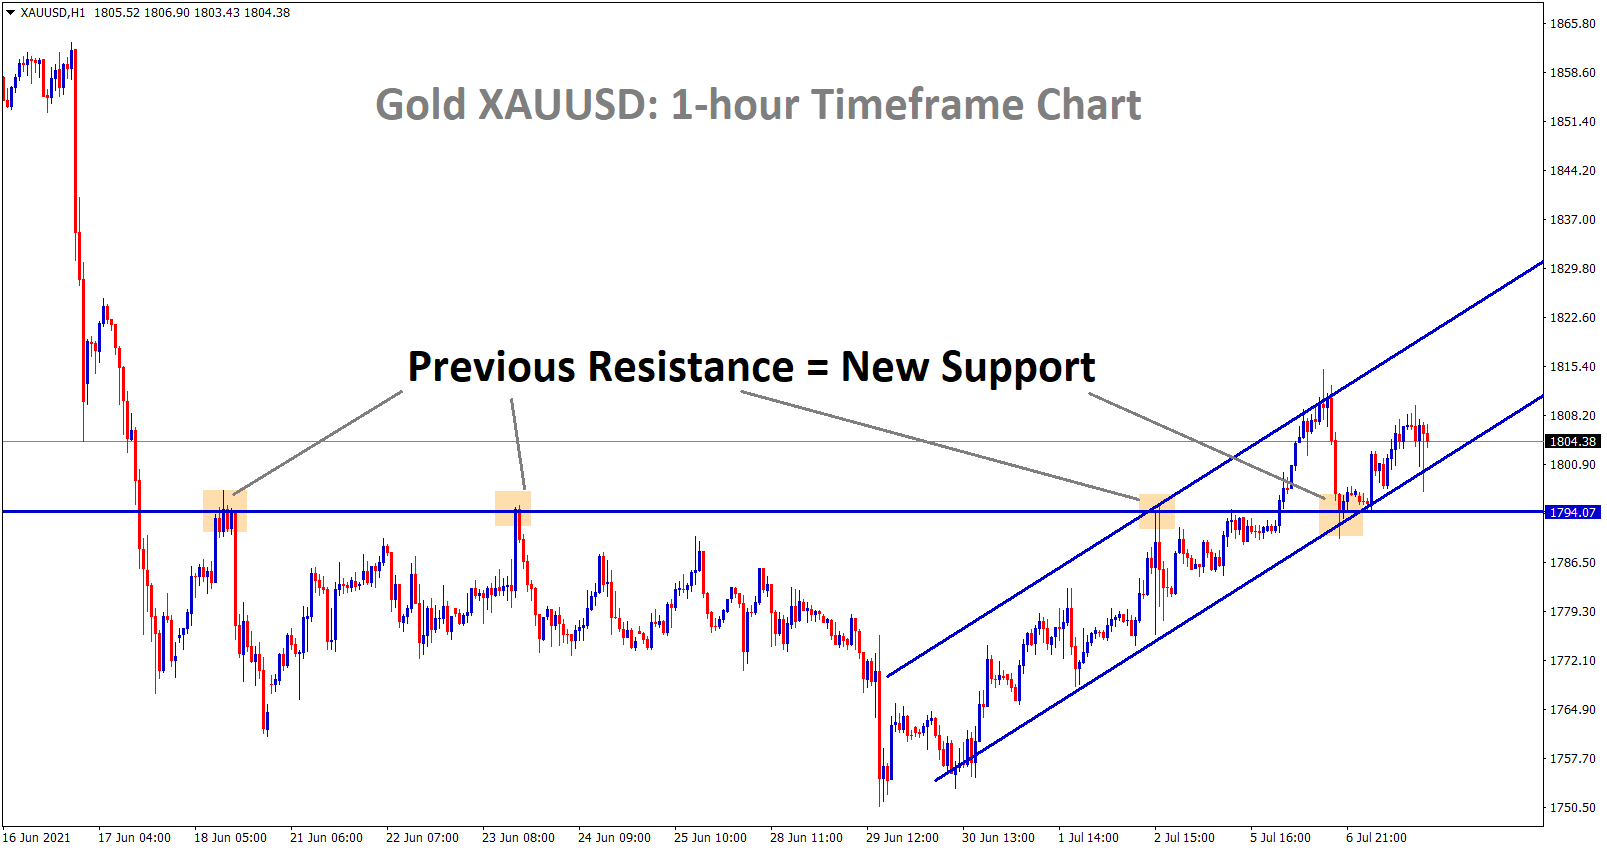 Gold XAUUSD is moving in an uptrend and the previous resistance acting now as a new support level